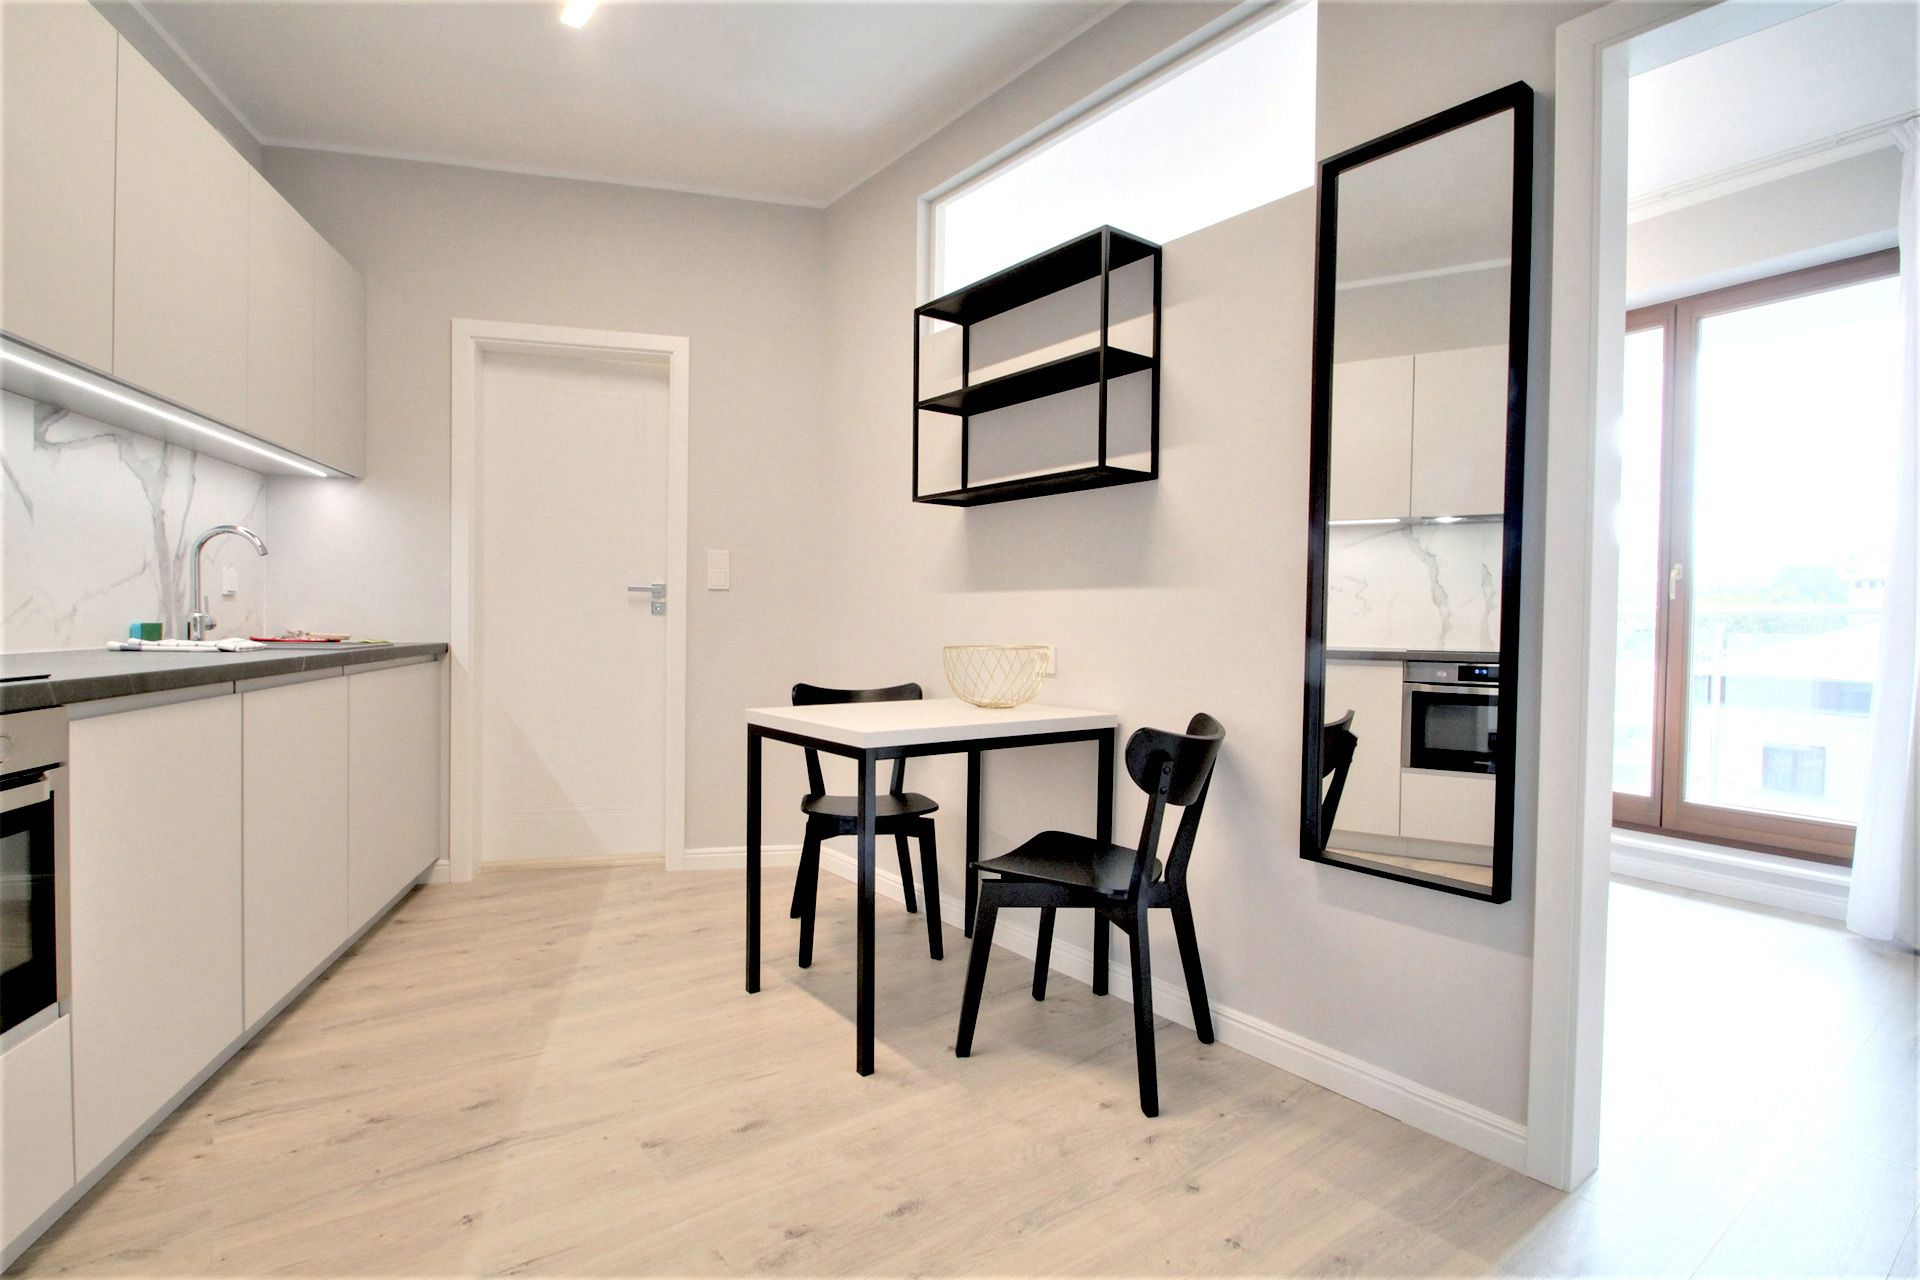 2 Bedroom - Medium apartment to rent in Warsaw UPR-A-061-3